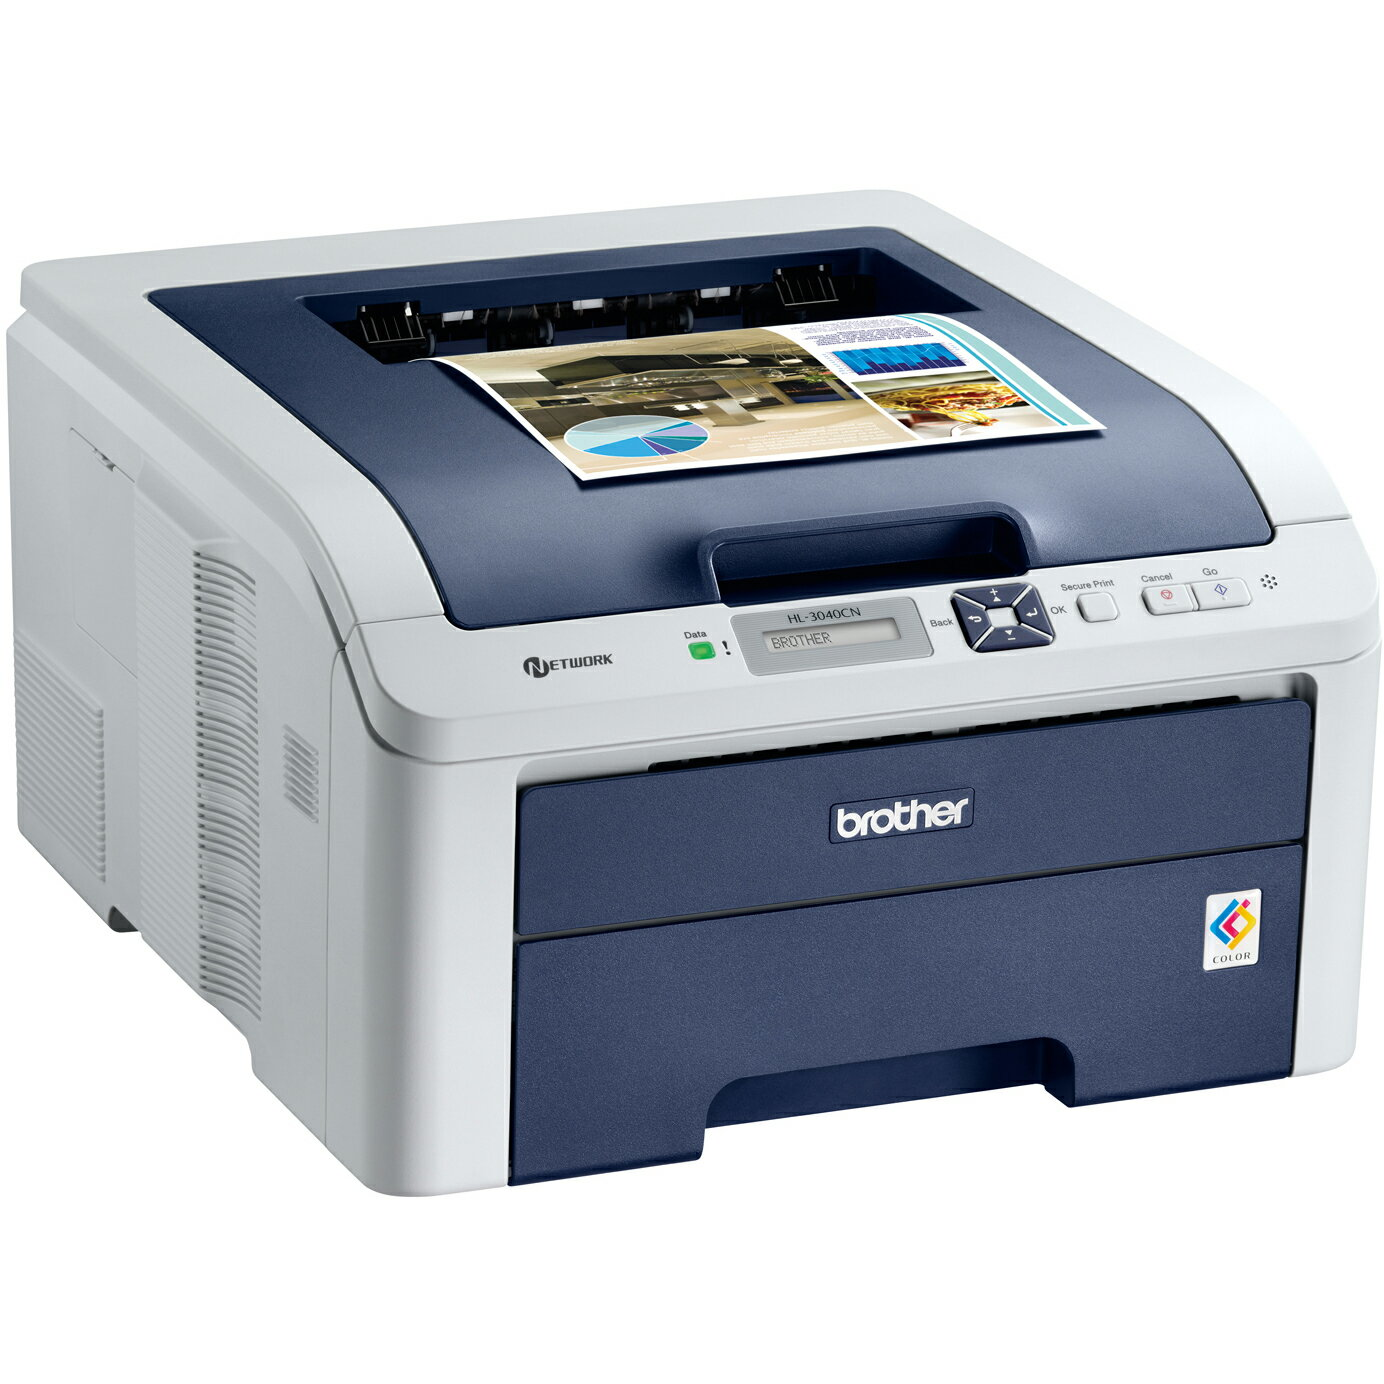 Brother HL-3040CN Digital Color Printer with Networking 3